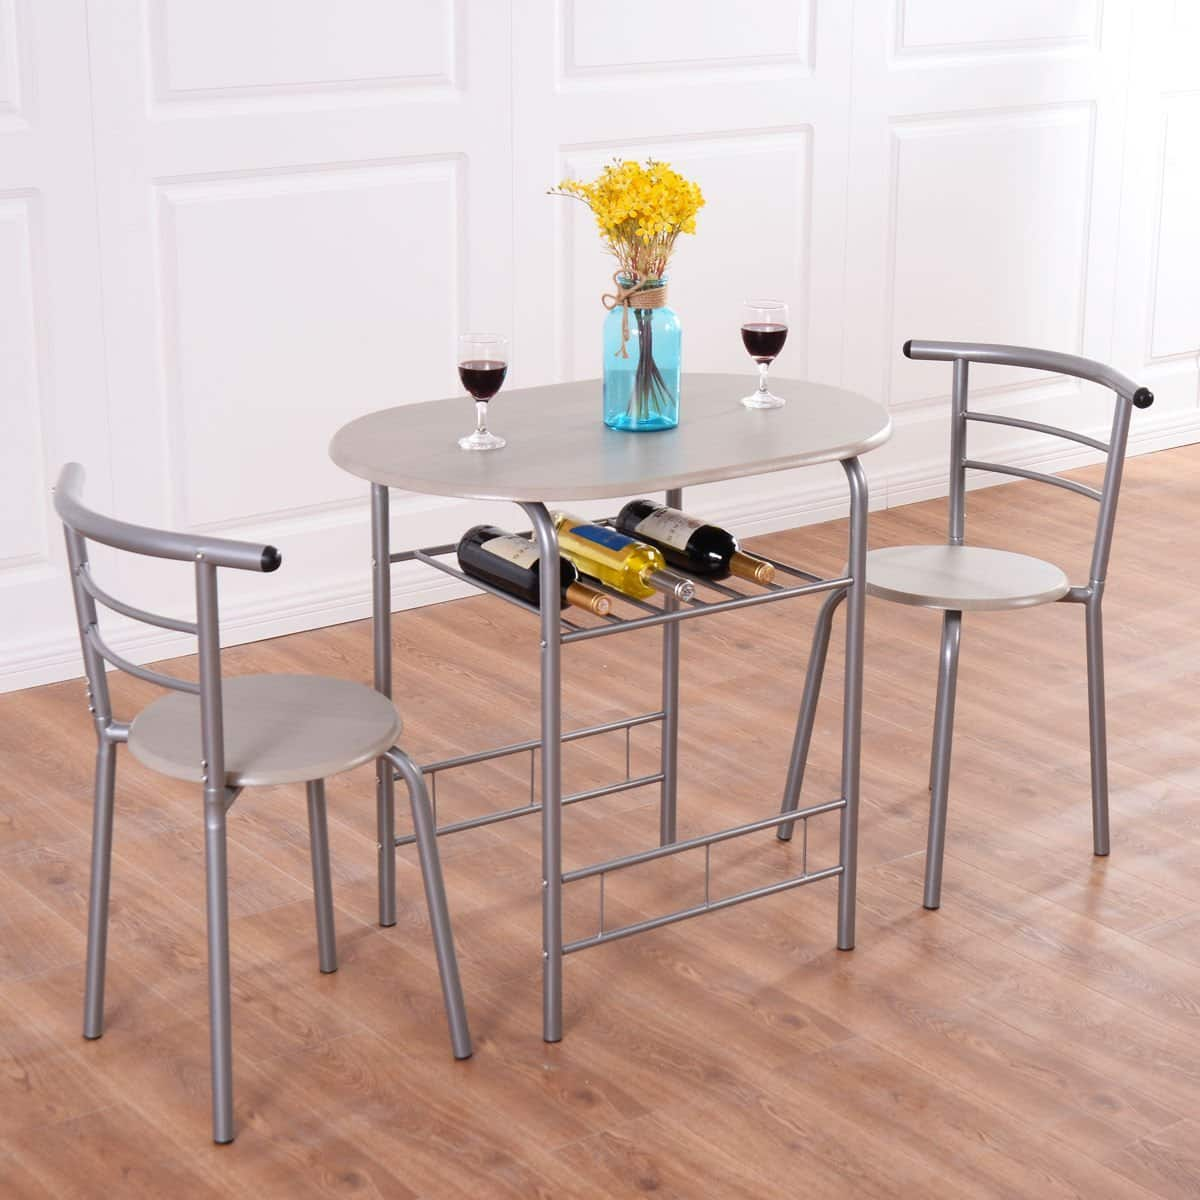 Best Deals On Dining Table And Chairs: Giantex Bistro Dining Table W/ 2 Chairs